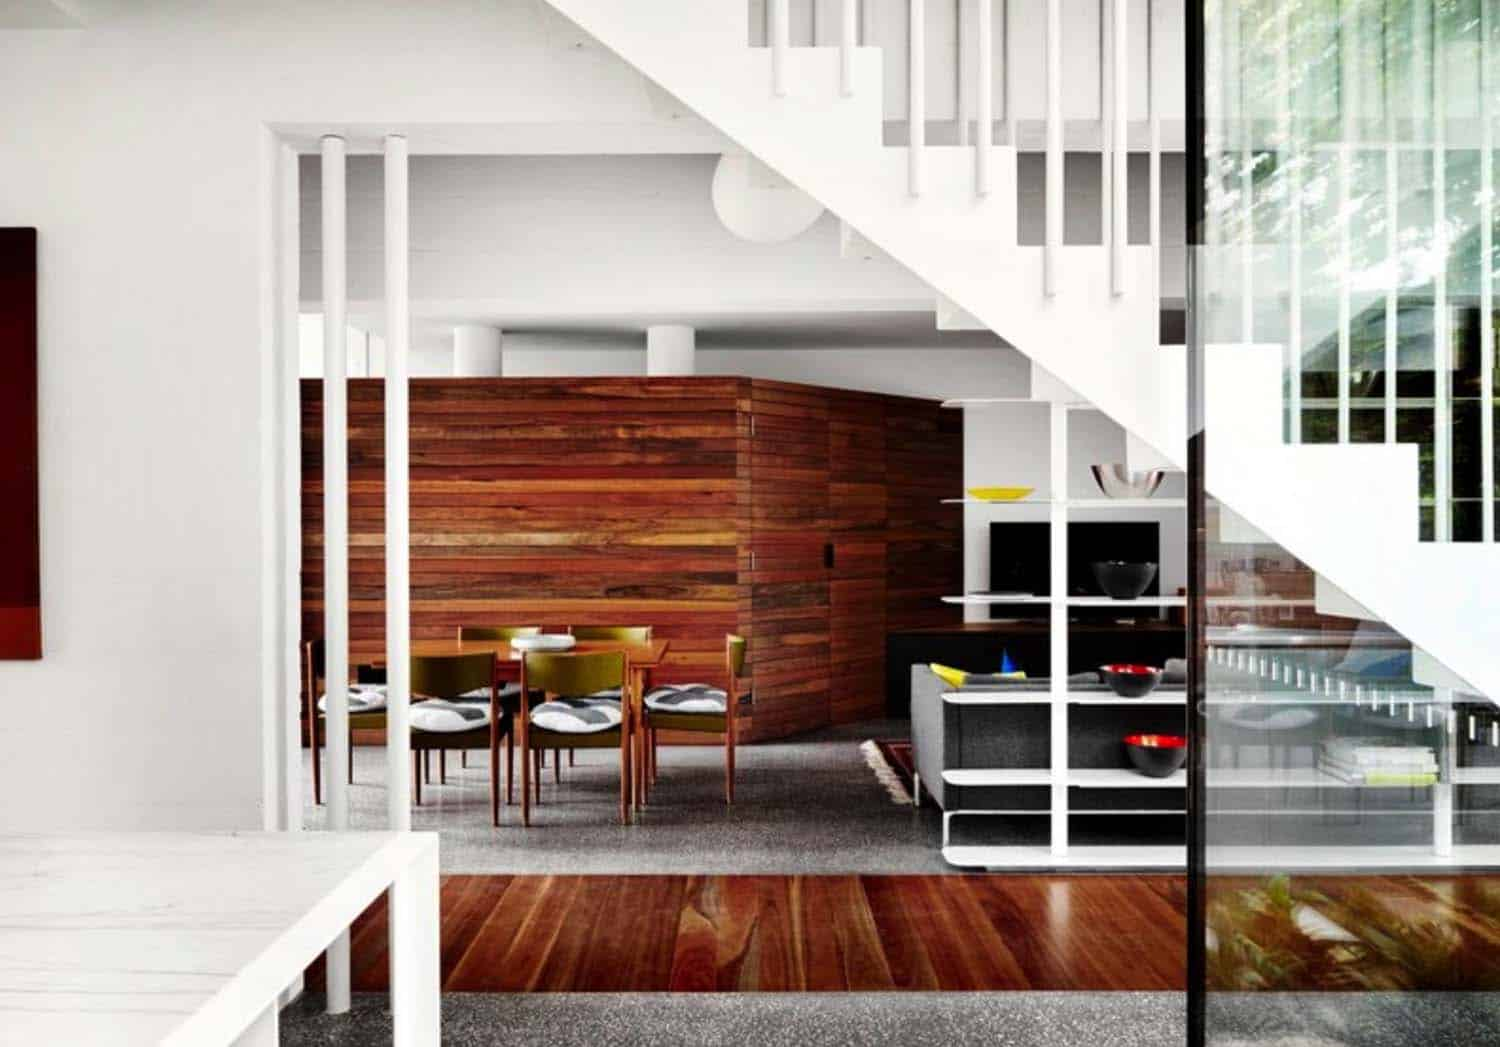 That House-Austin Maynard Architects-25-1 Kindesign